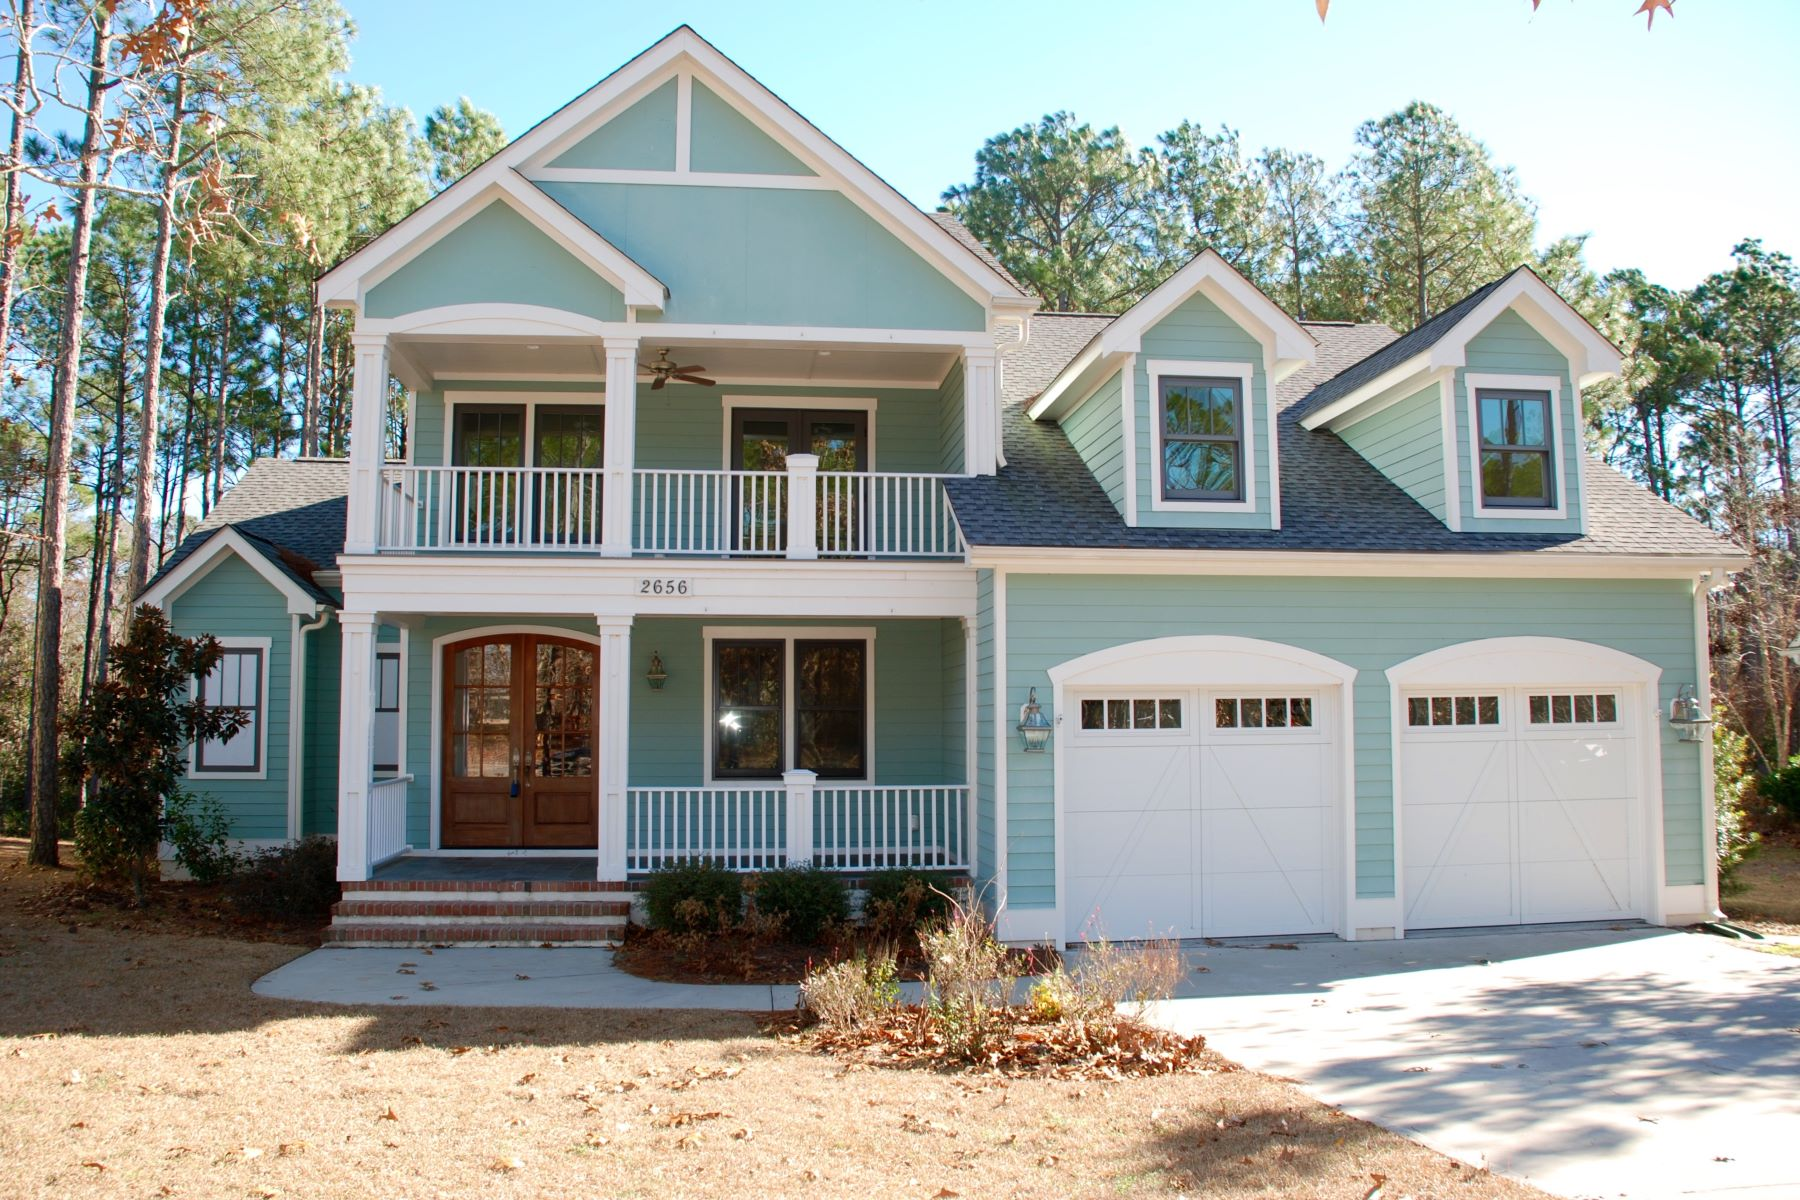 Single Family Home for Sale at Ideal Living Found In This Custom Built Home 2656 Park Ridge Drive Southport, North Carolina 28461 United States